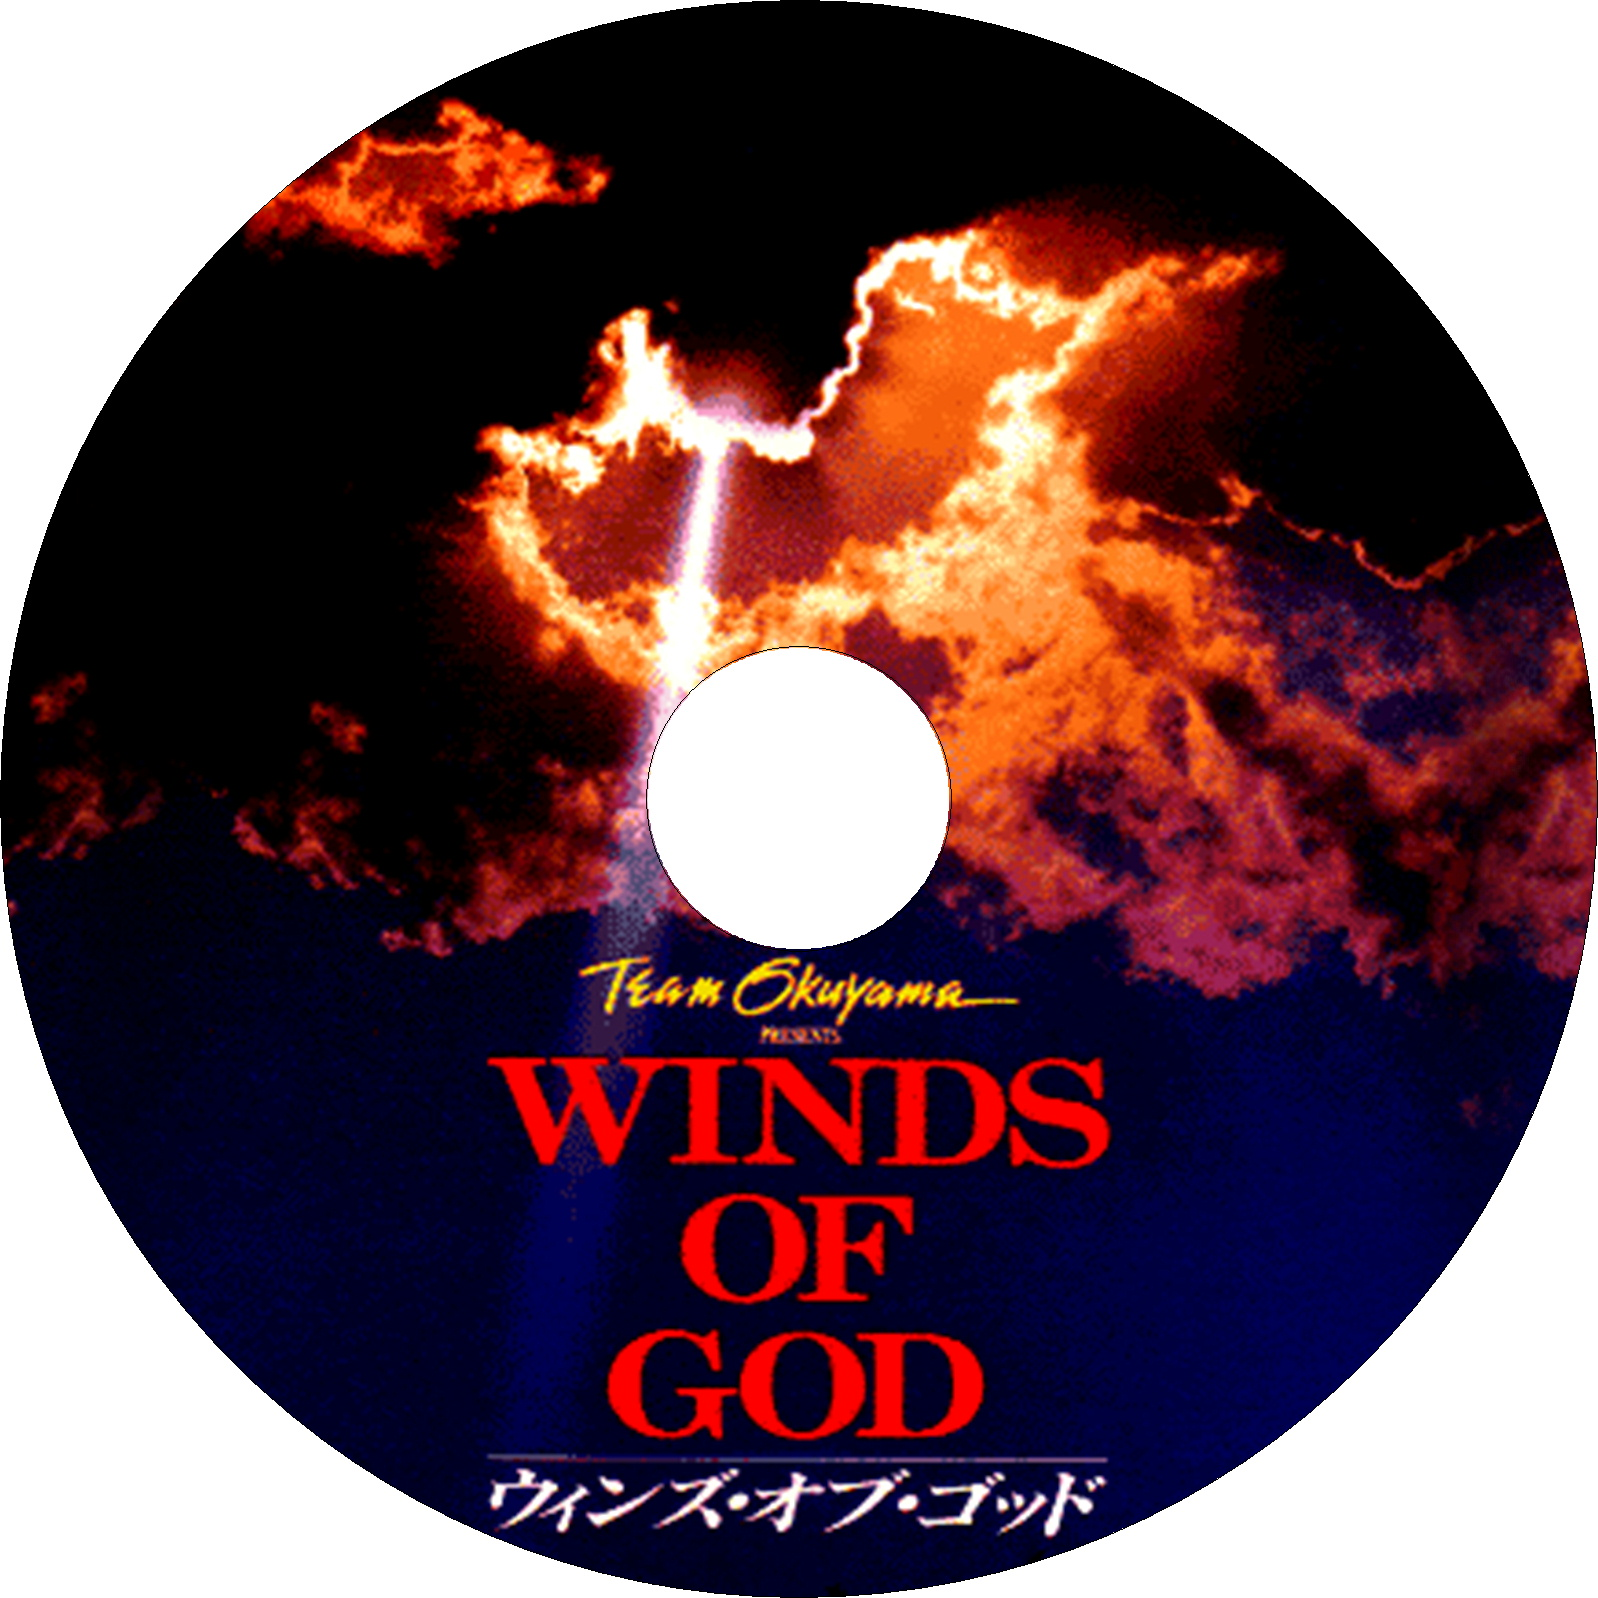 WINDS OF GOD ラベル